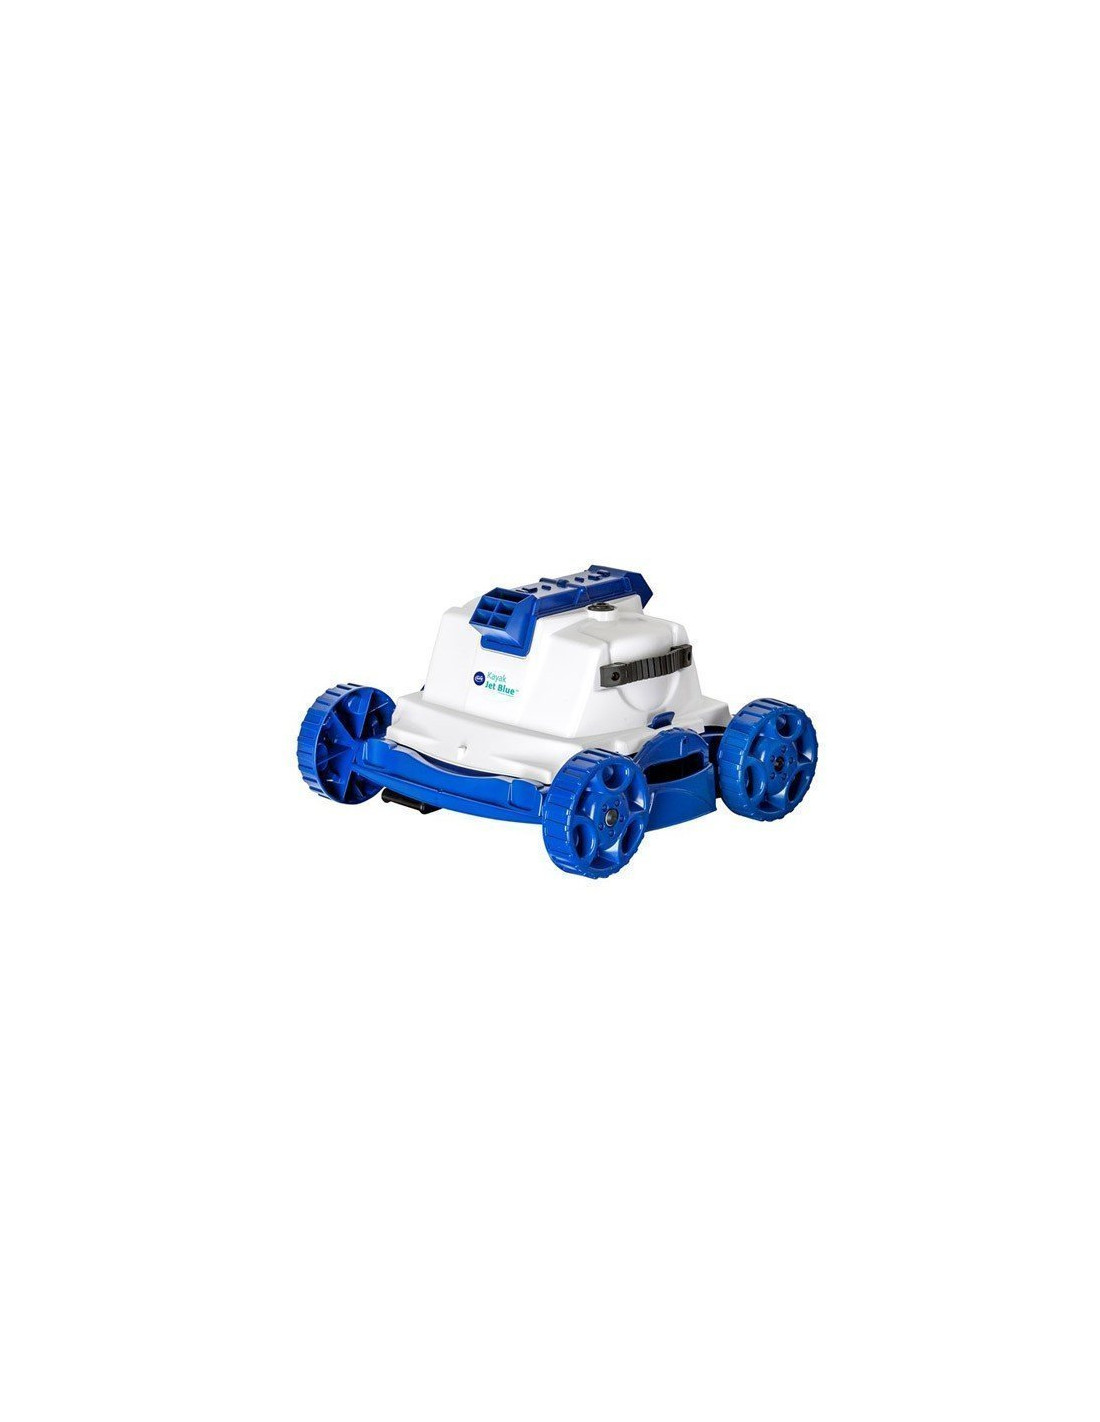 Robot de piscine lectrique mod le kayak jet blue gre pool for Robot piscine electrique